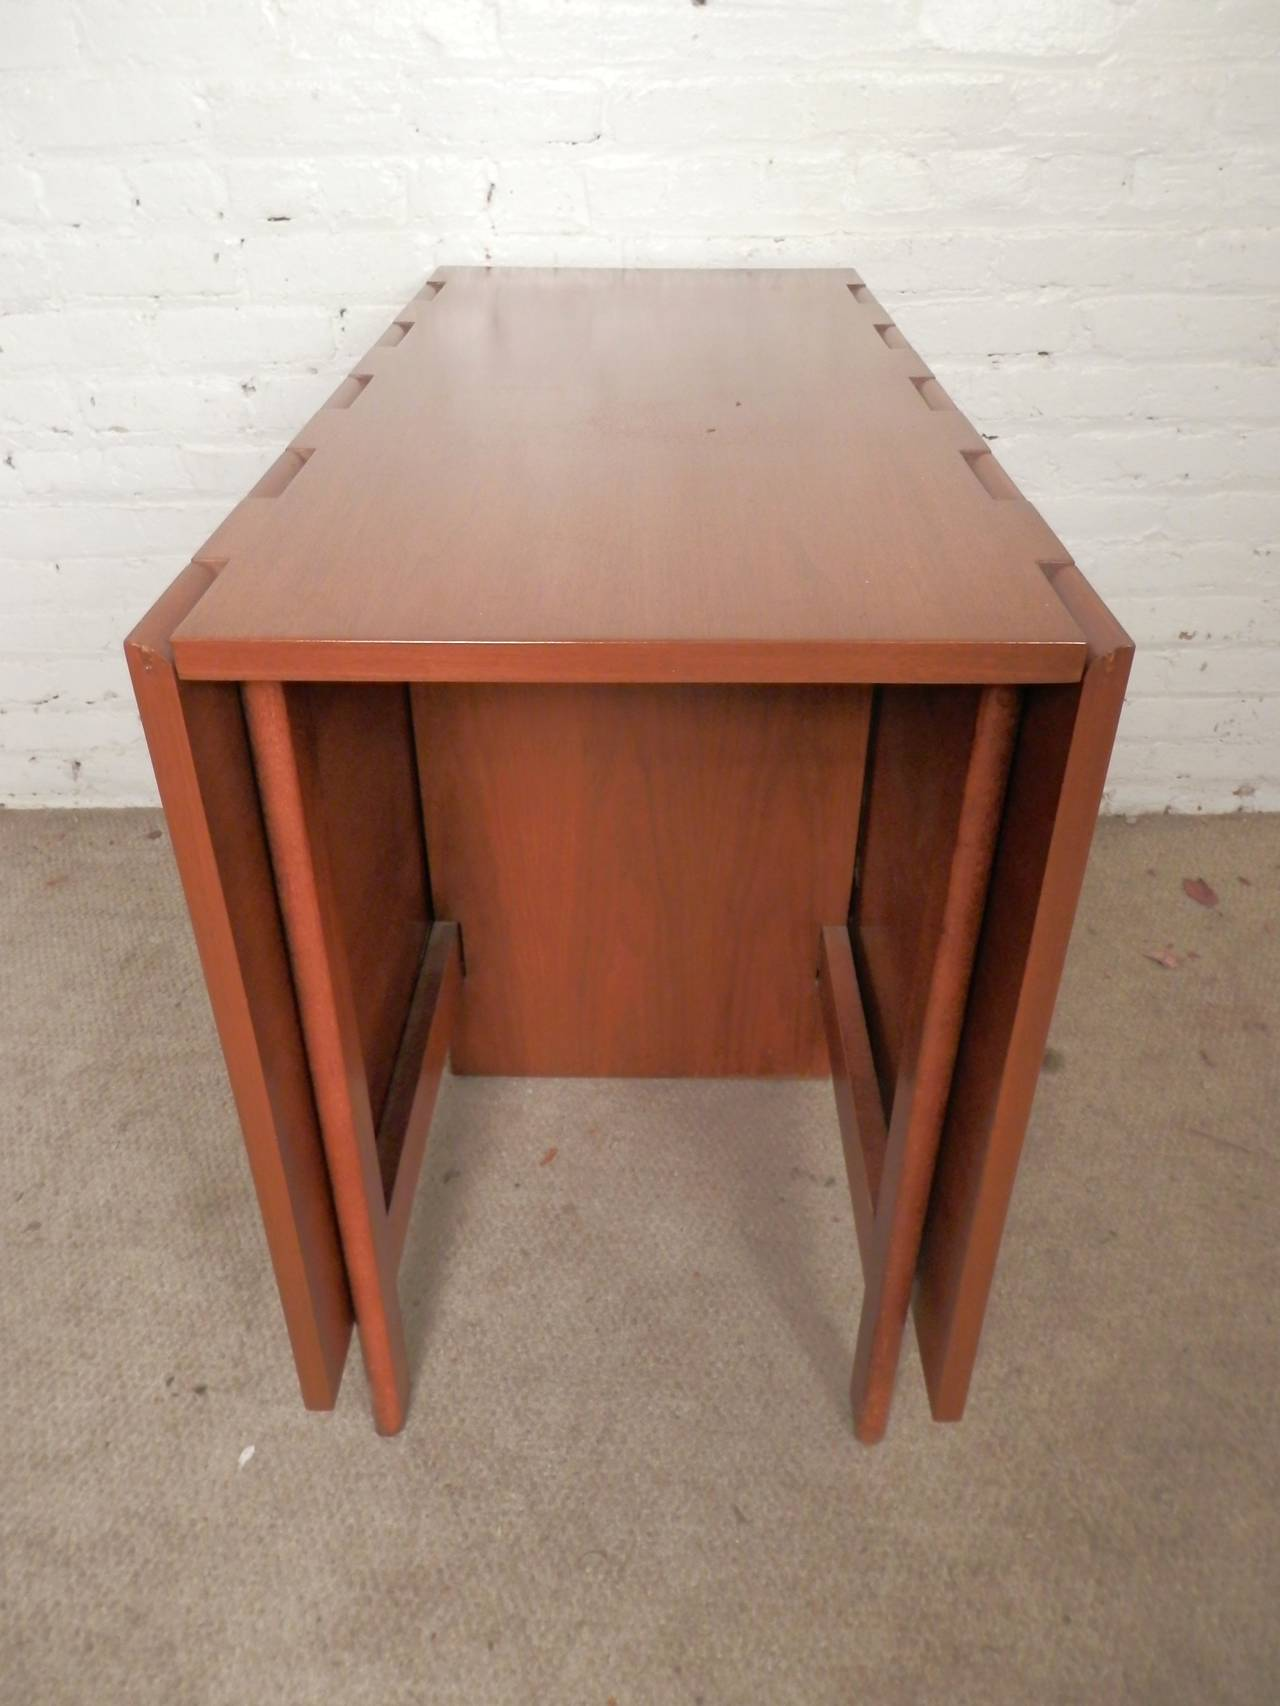 Modern Drop Leaf Tables Small Spaces Mid Century Drop Leaf Table By George Nelson For Sale At